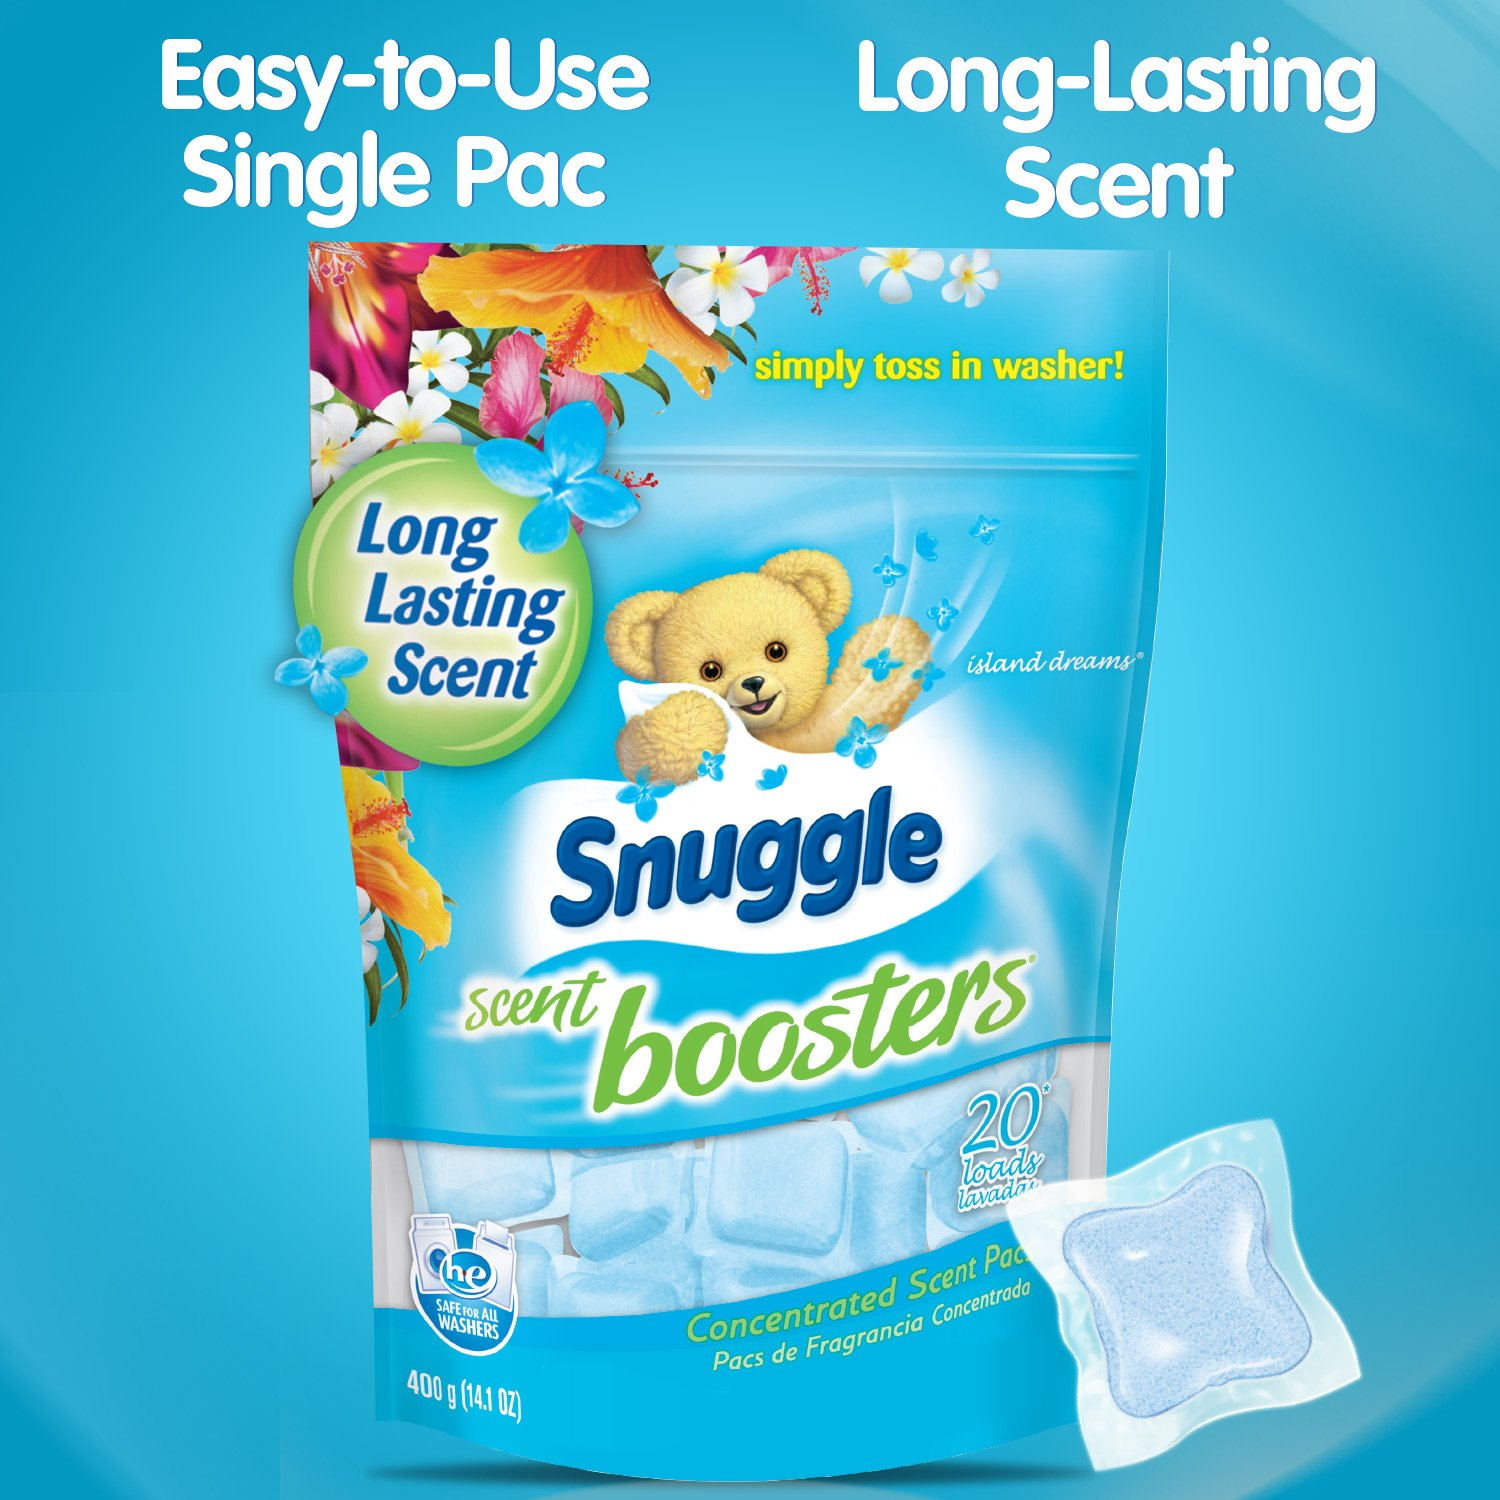 Amazon.com: Snuggle Laundry Scent Boosters Concentrated Scent Pacs, Island Dreams, Pouch, 20 Count: Health & Personal Care